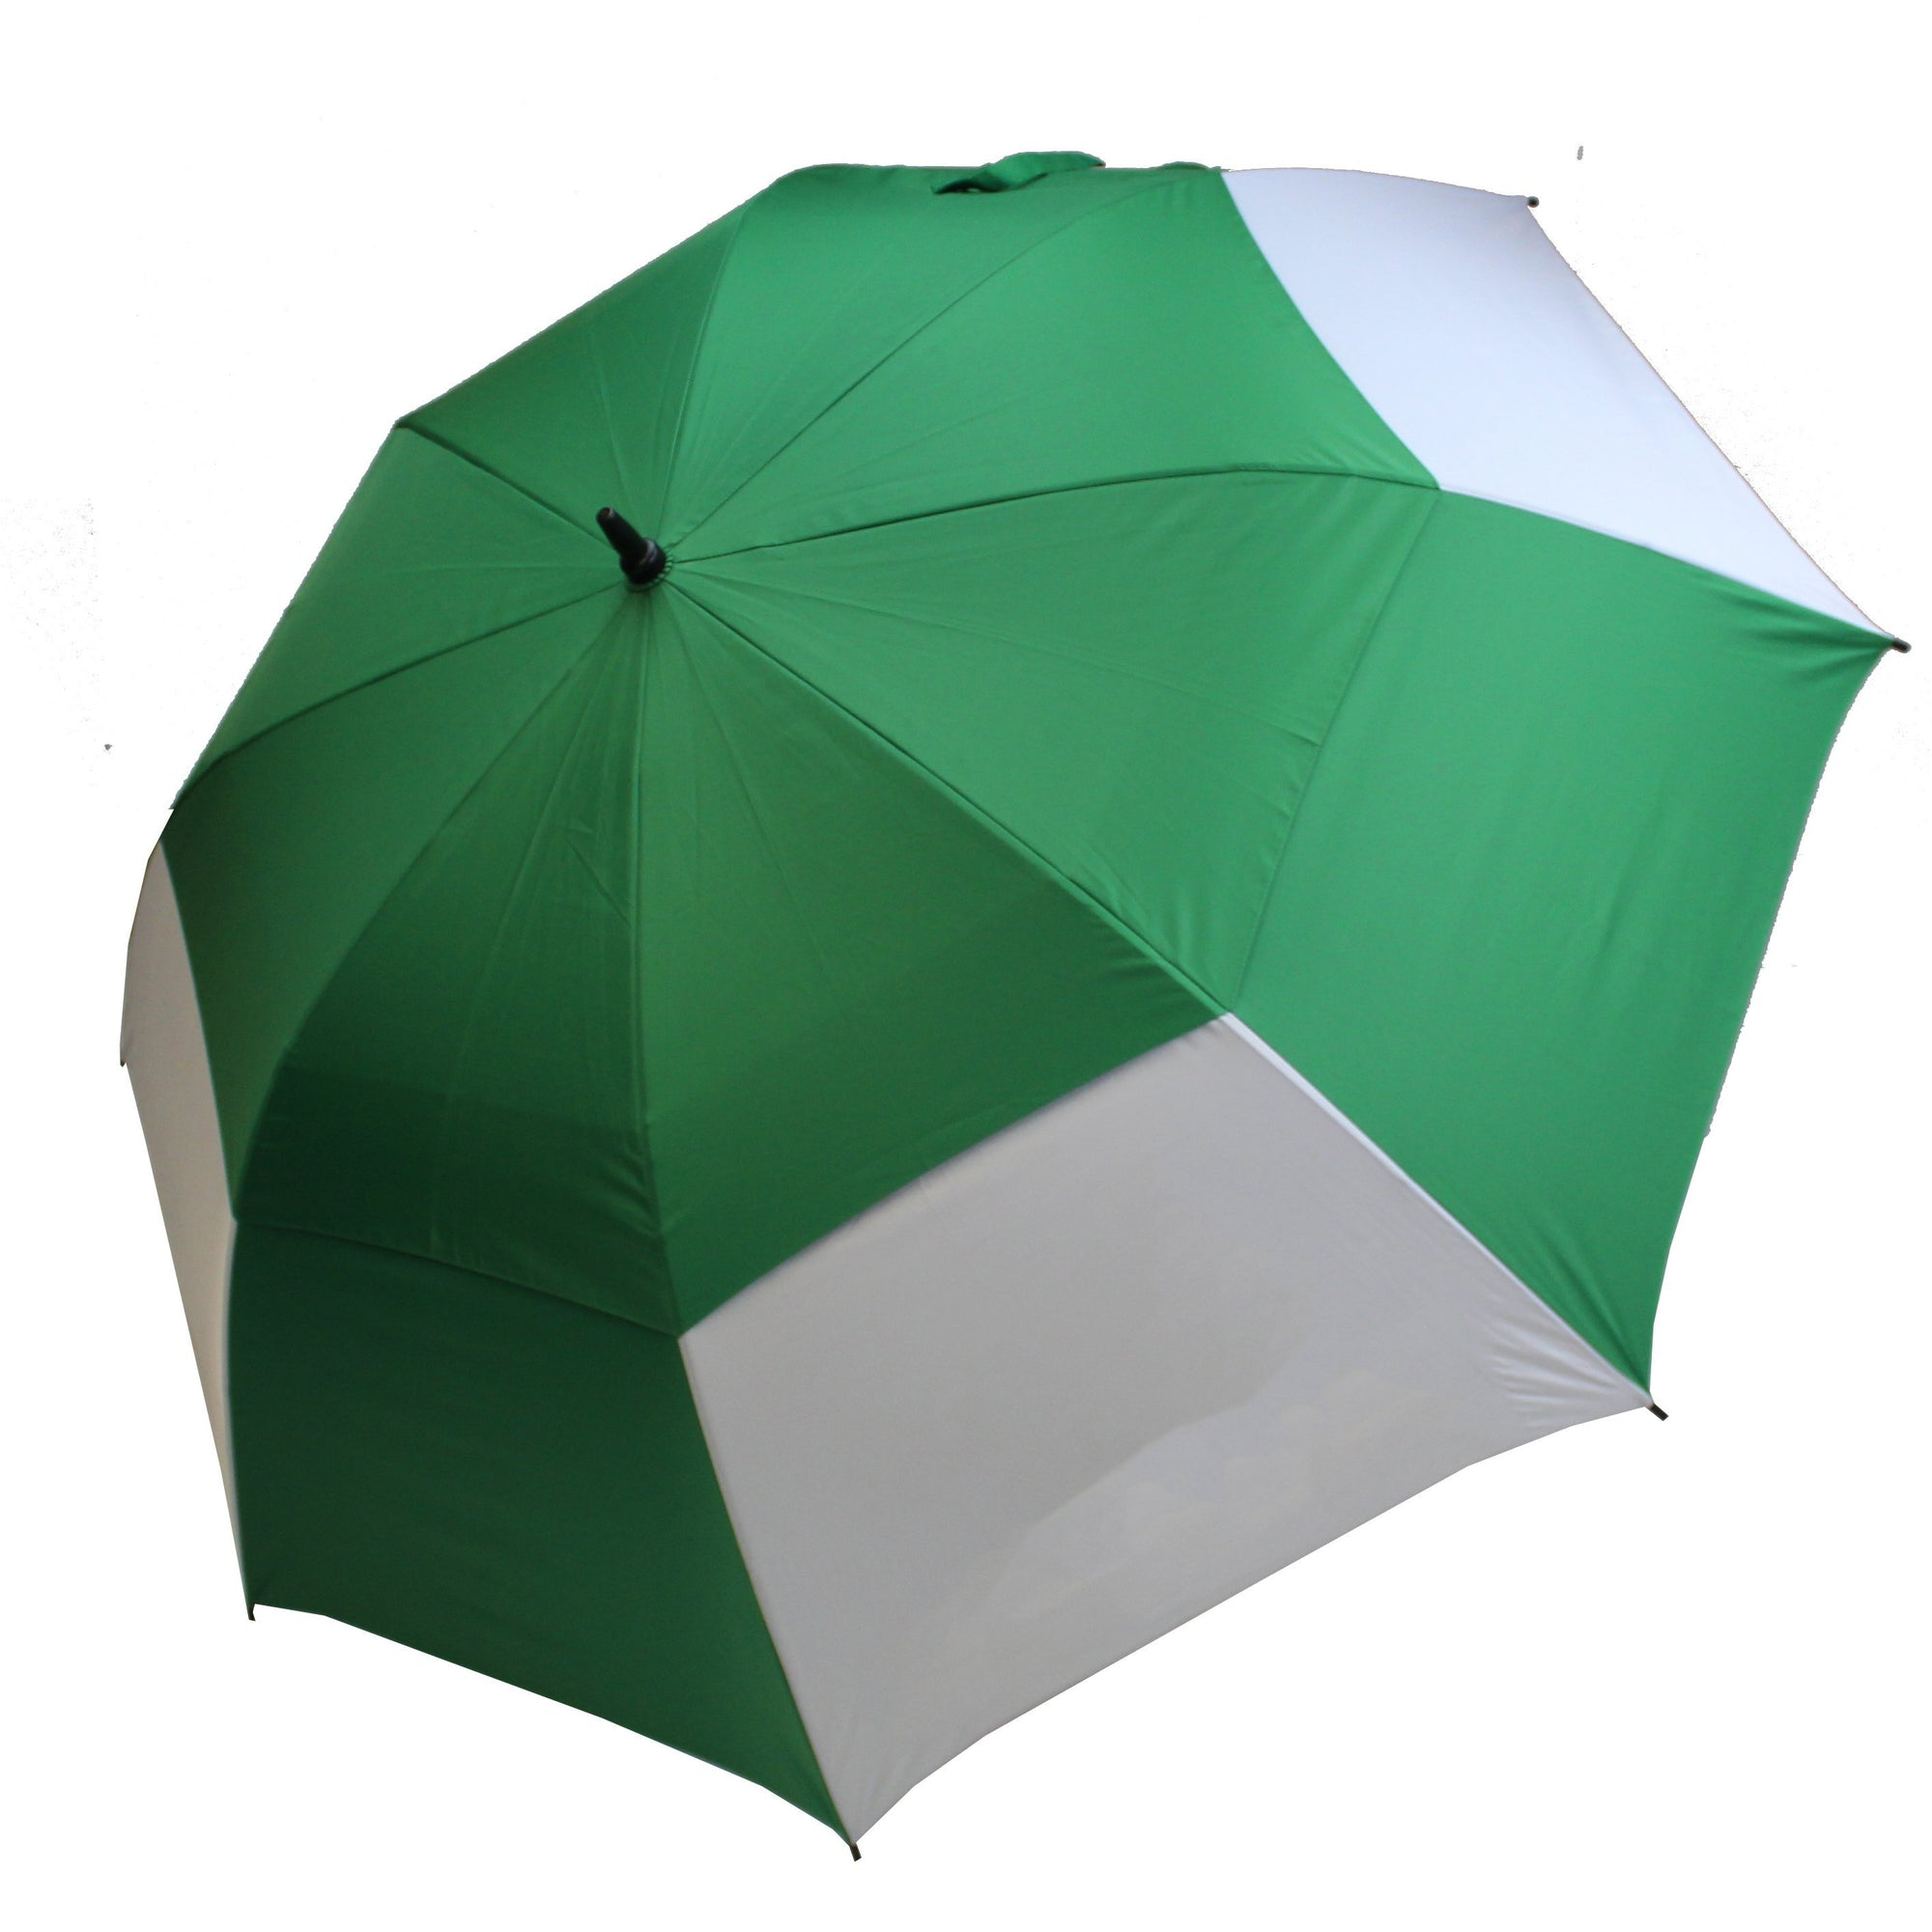 Druids Golf - Crested Double Canopy Corporate Umbrella (Bottle)